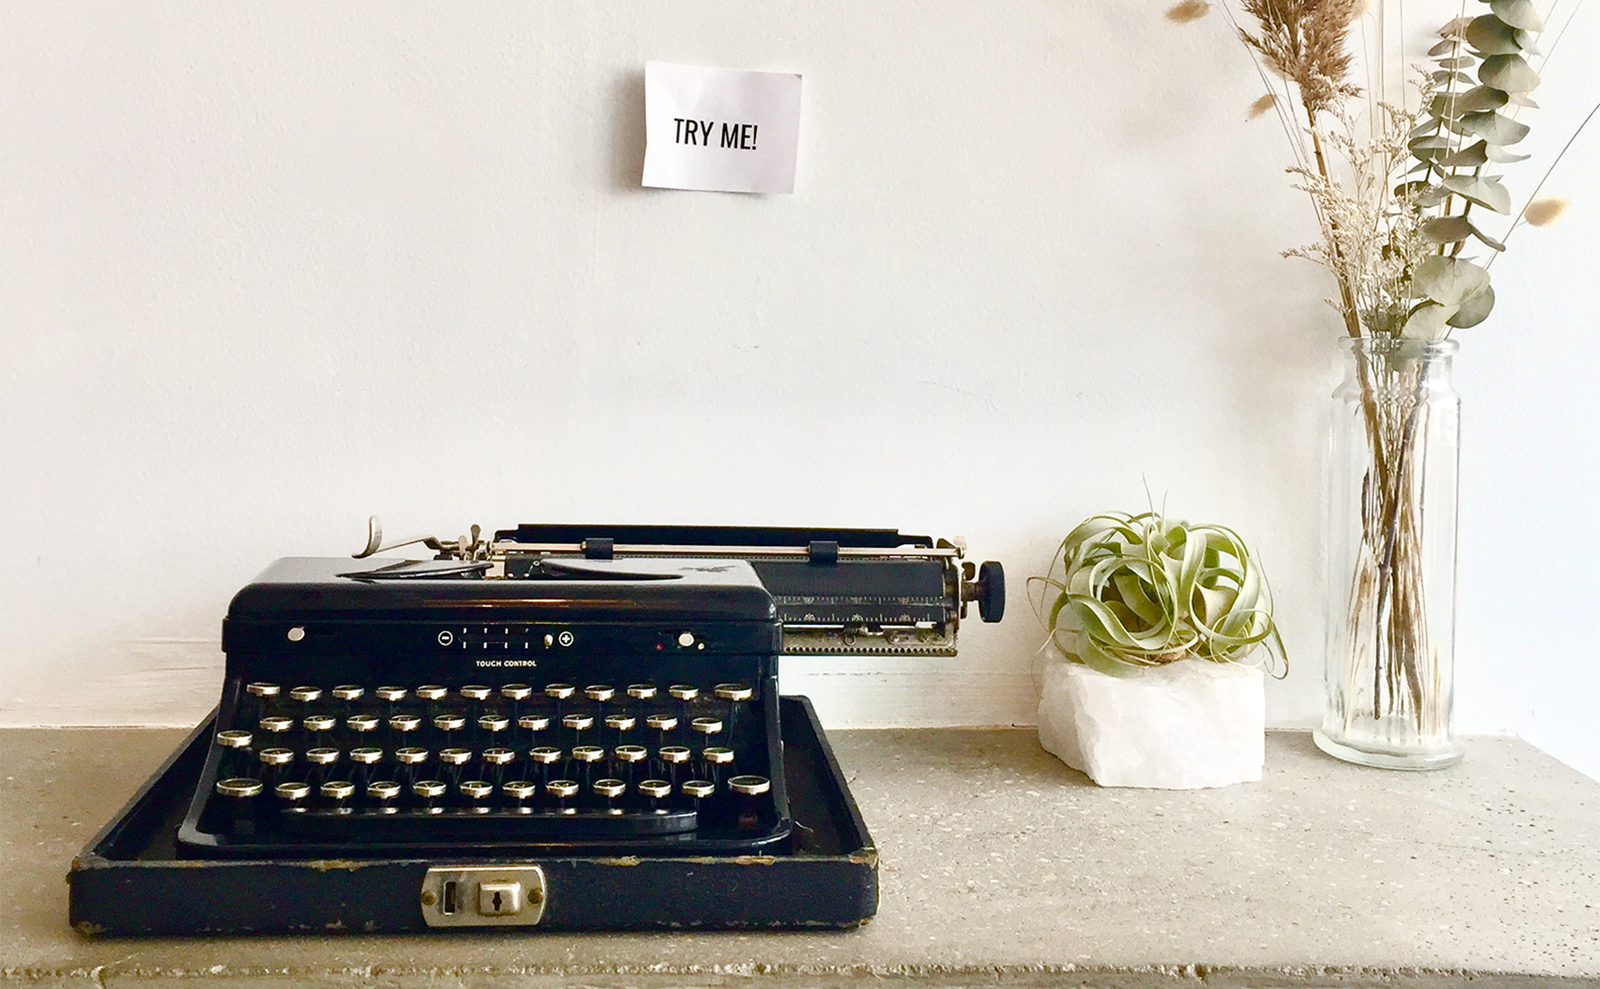 vintage typewriter on a table with flowers